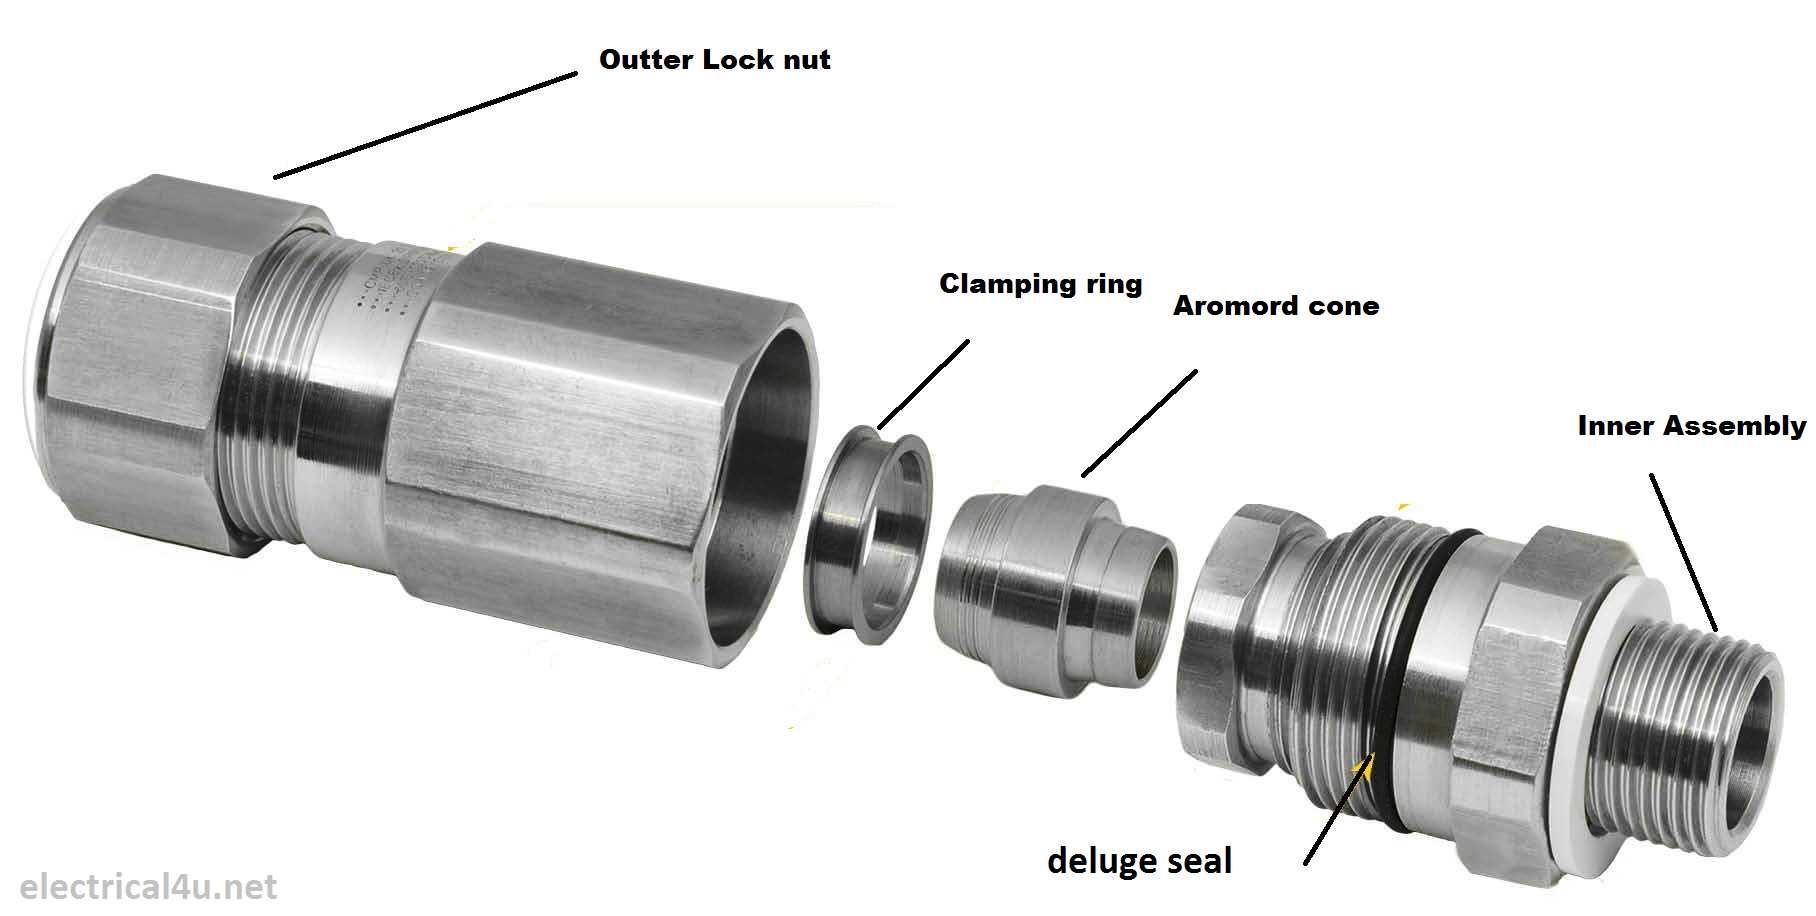 Cable gland image